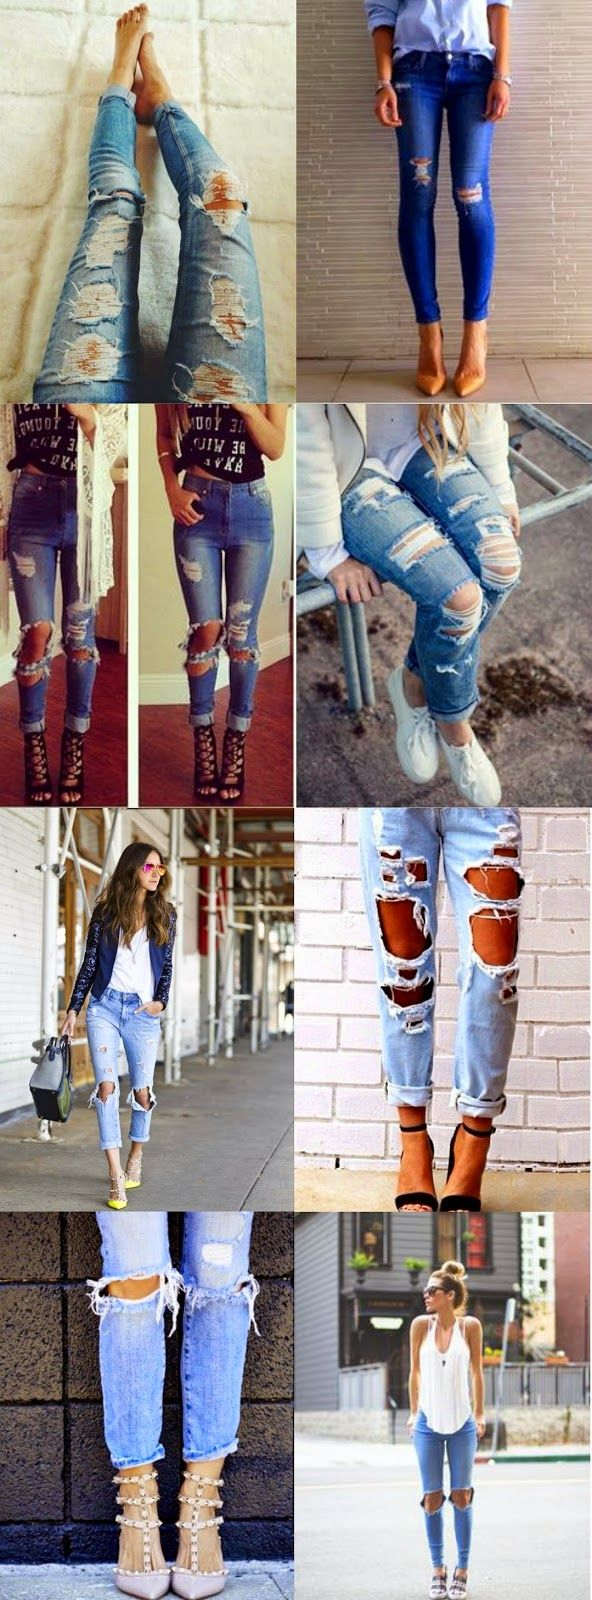 ripped+jeans+tutorial+diy.jpg (592×1600) - Best 25+ Diy Ripped Jeans Ideas On Pinterest Diy Distressed